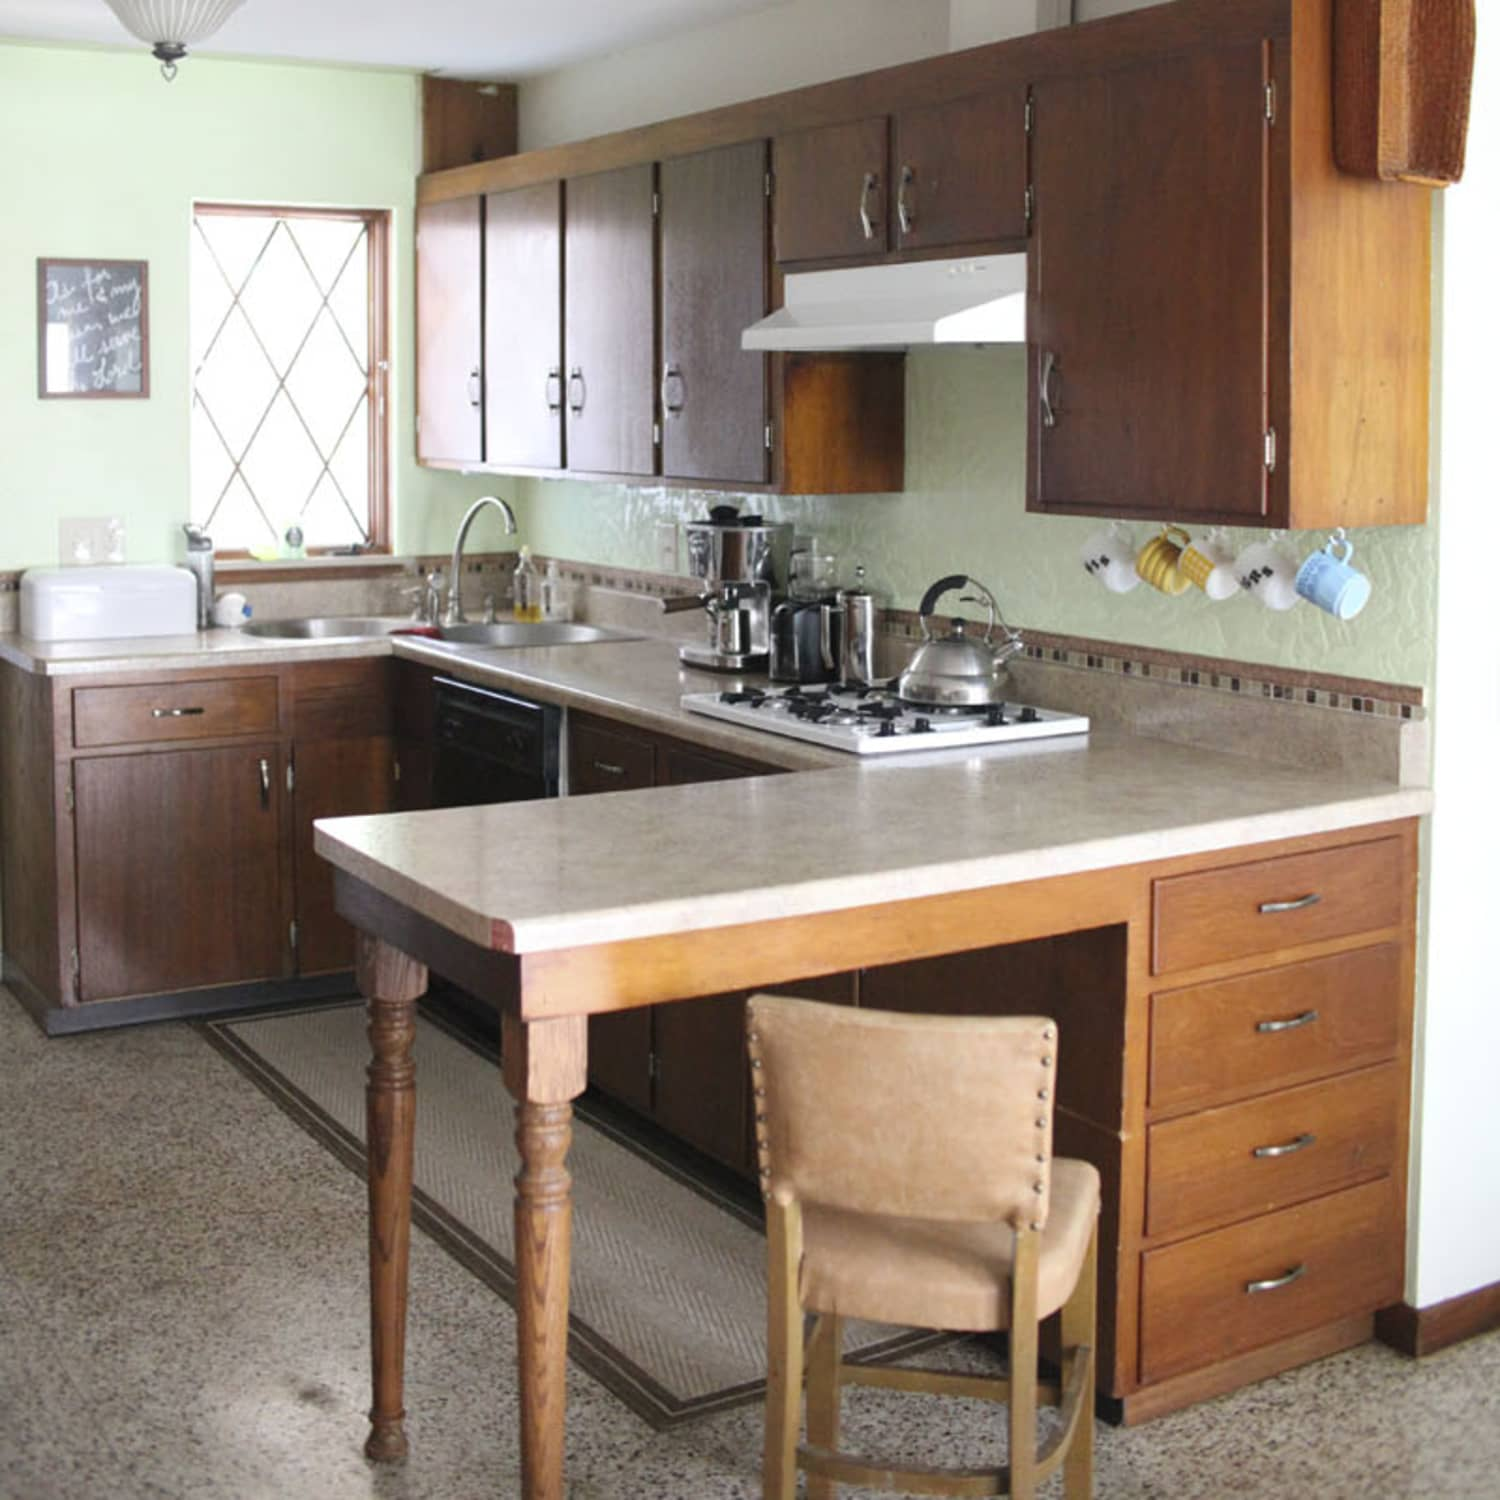 5 Breathtaking Affordable Kitchen Transformations | Apartment Therapy